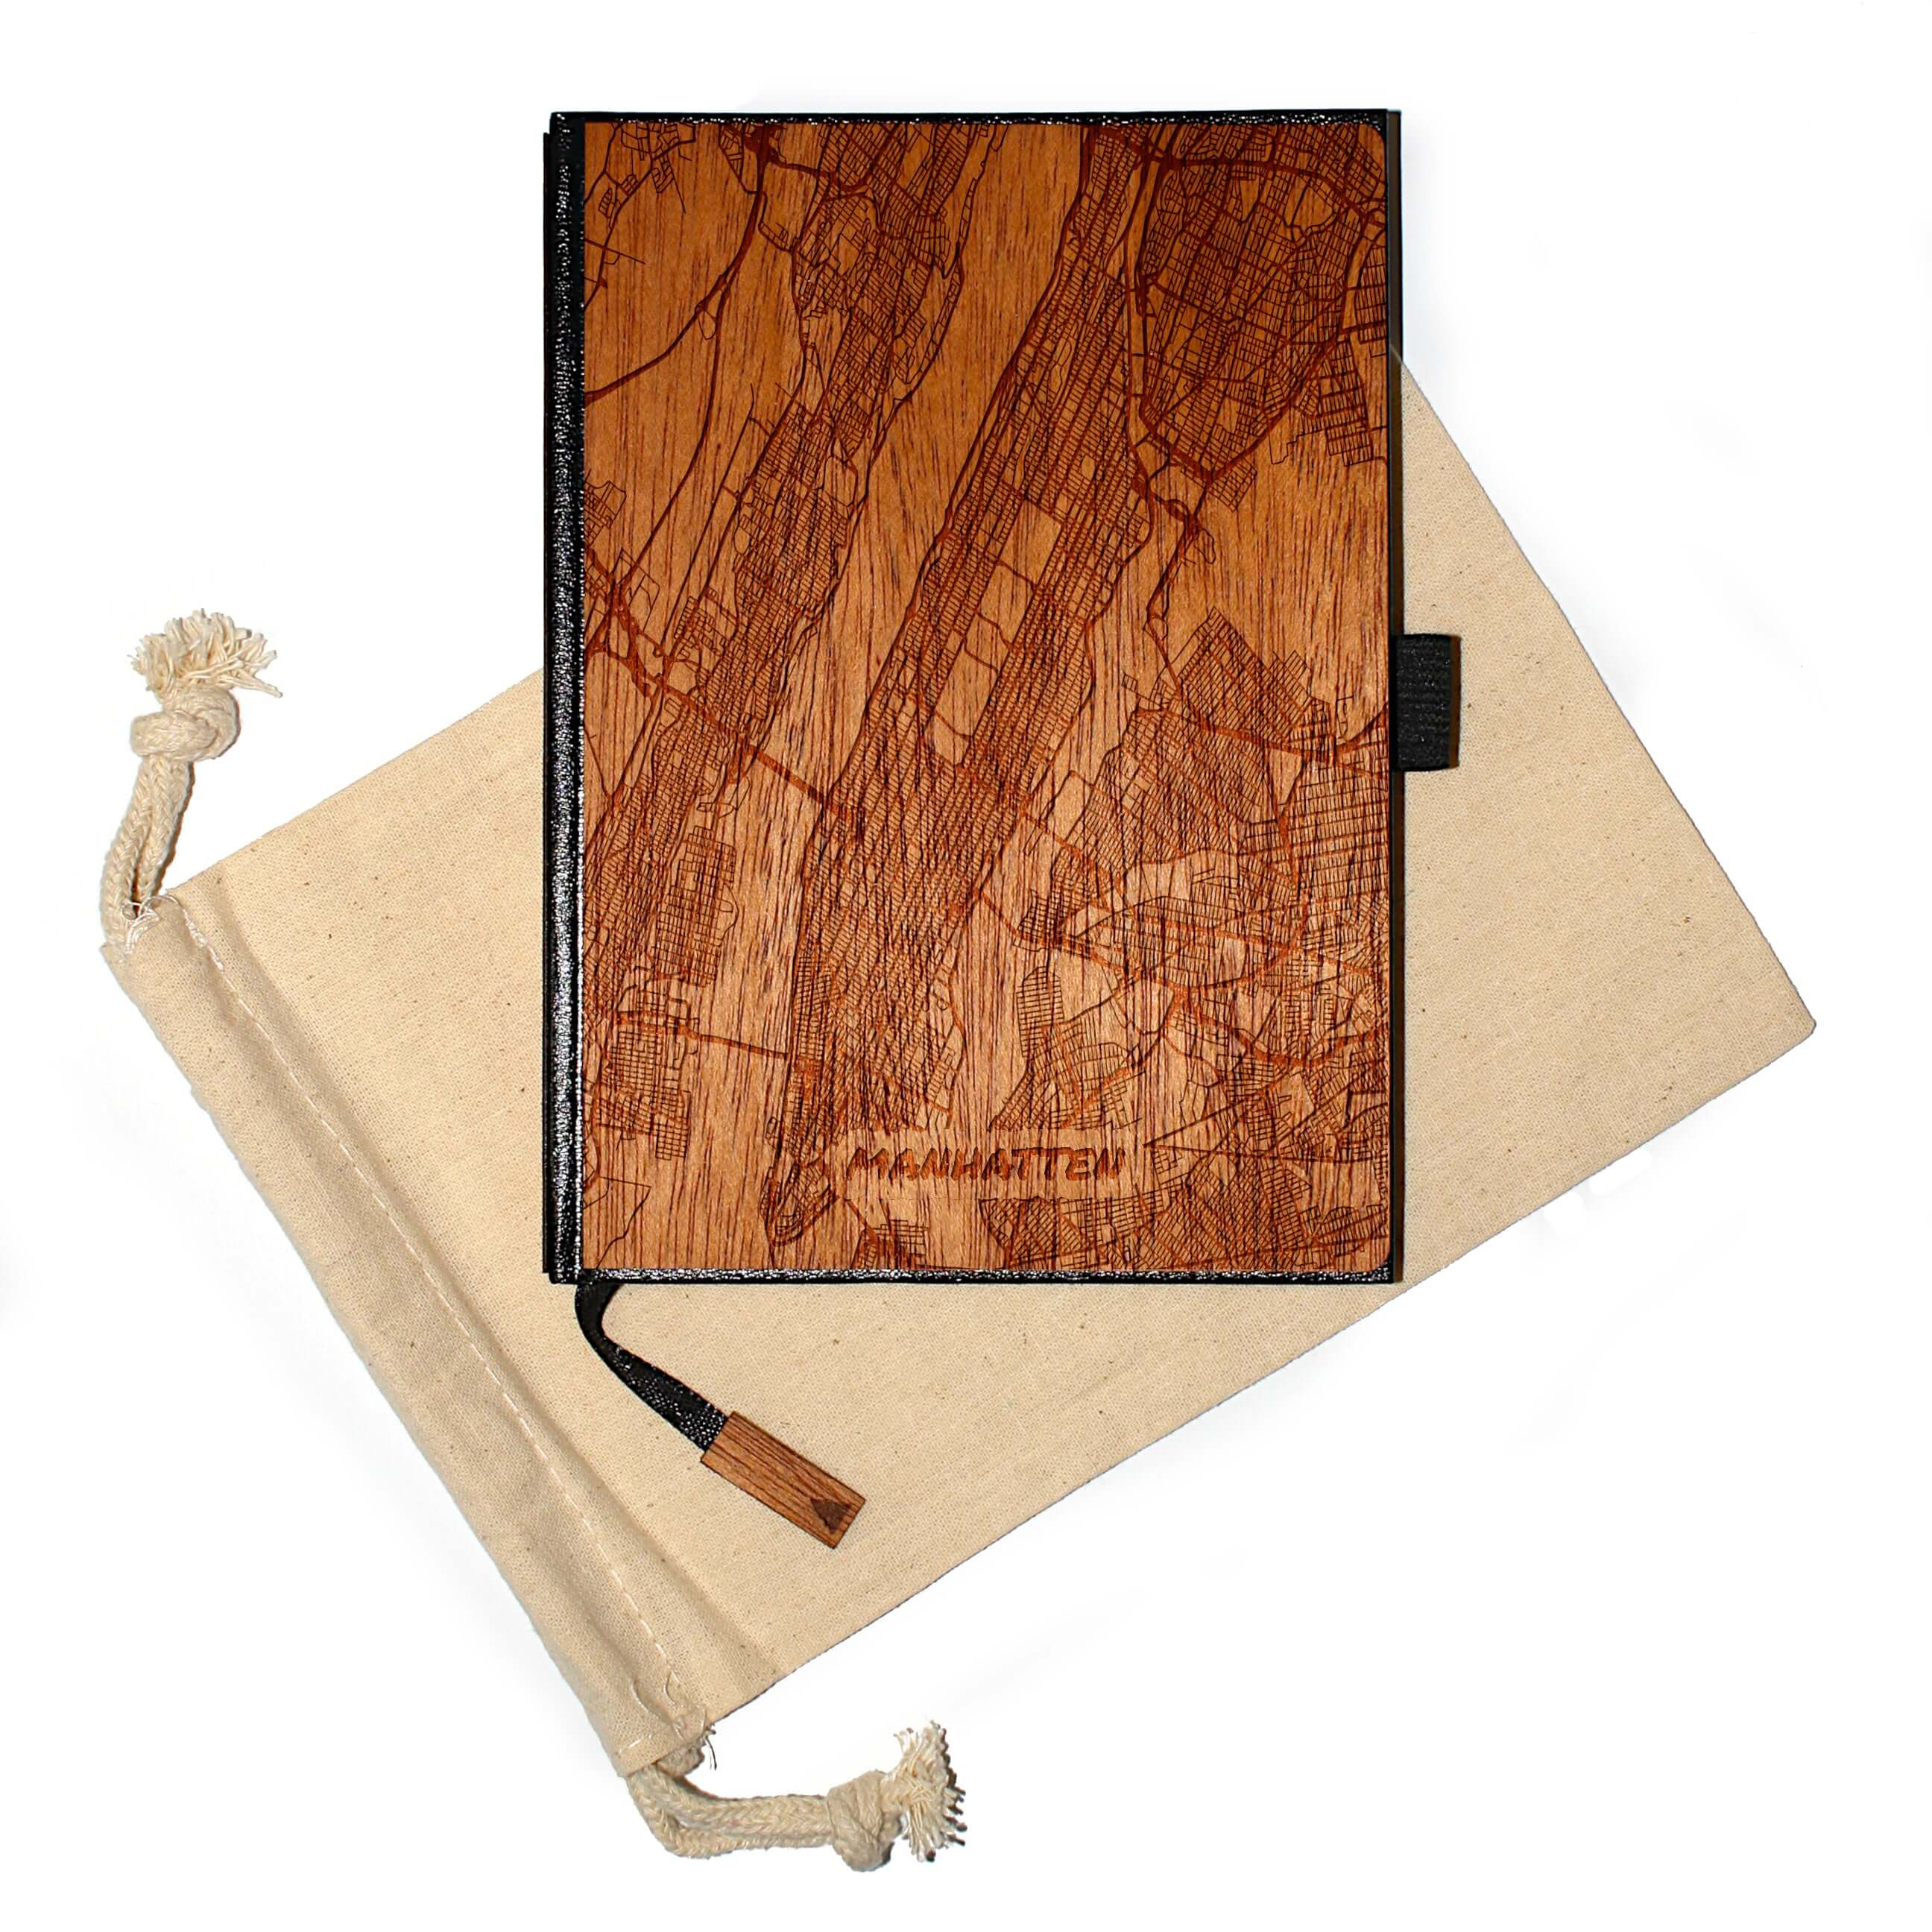 5 x 7 Wood Travel Journal / Planner (147 Laser-Engraved US City Maps) (JACKSON to WICHITA)